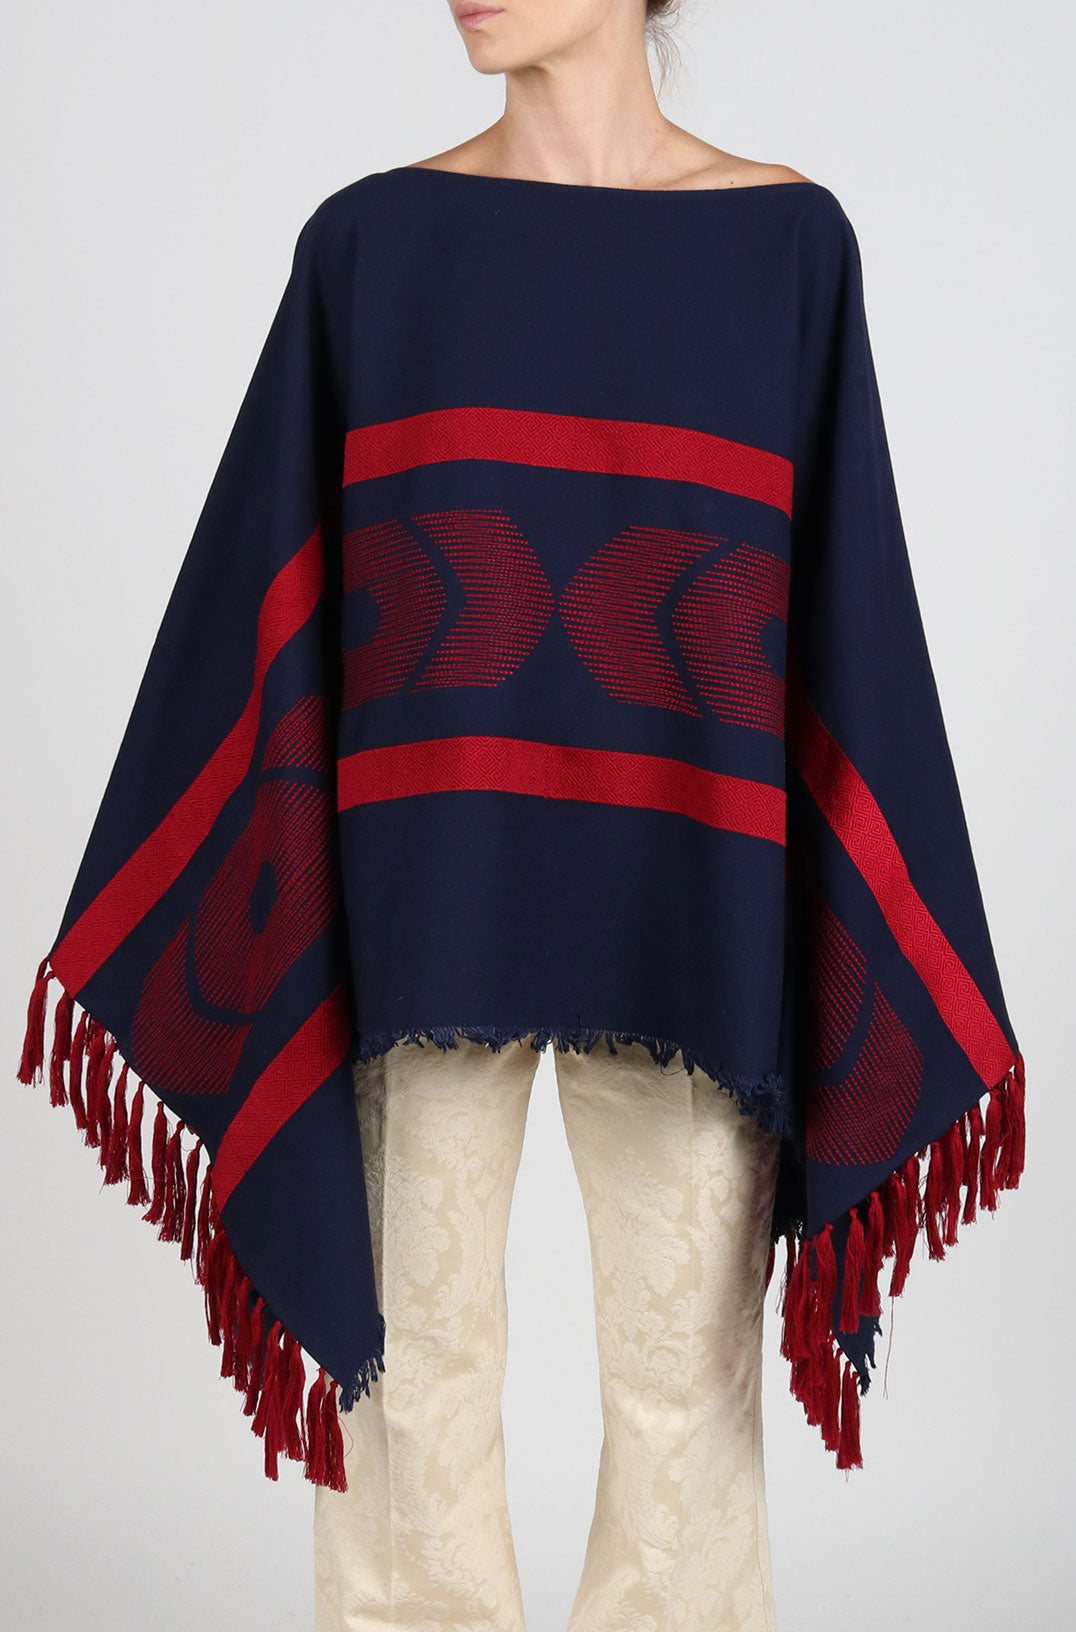 Fanm Mon PONCHO Navy Linen Red Embroidered Vyshyvanka Top Pancho